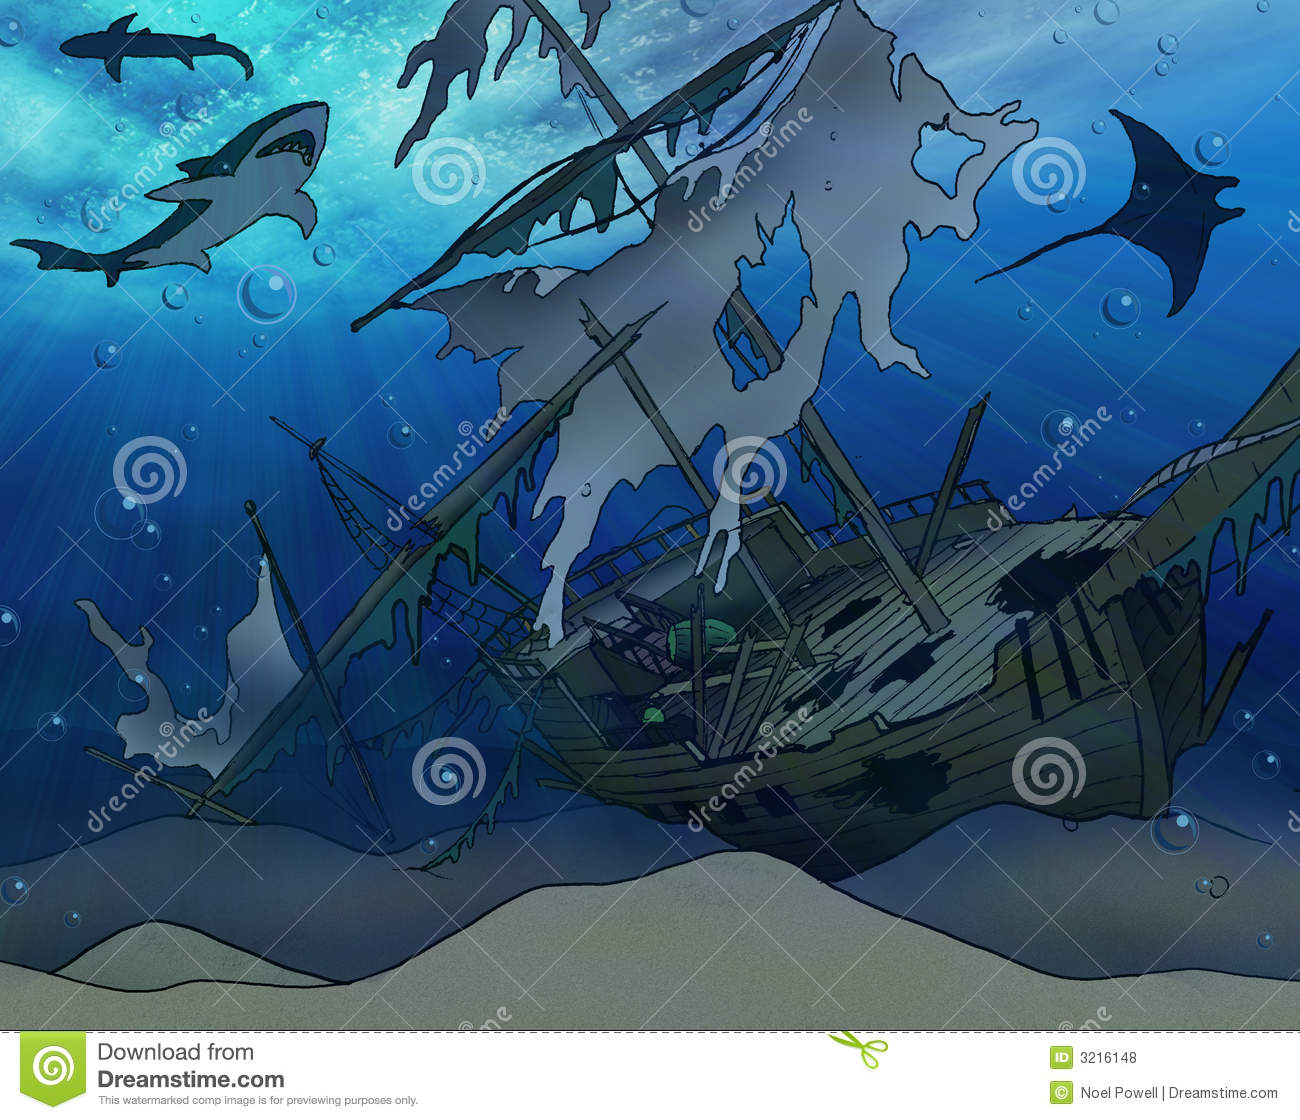 Shipwreck Illustration Royalty Free Stock Photos Image